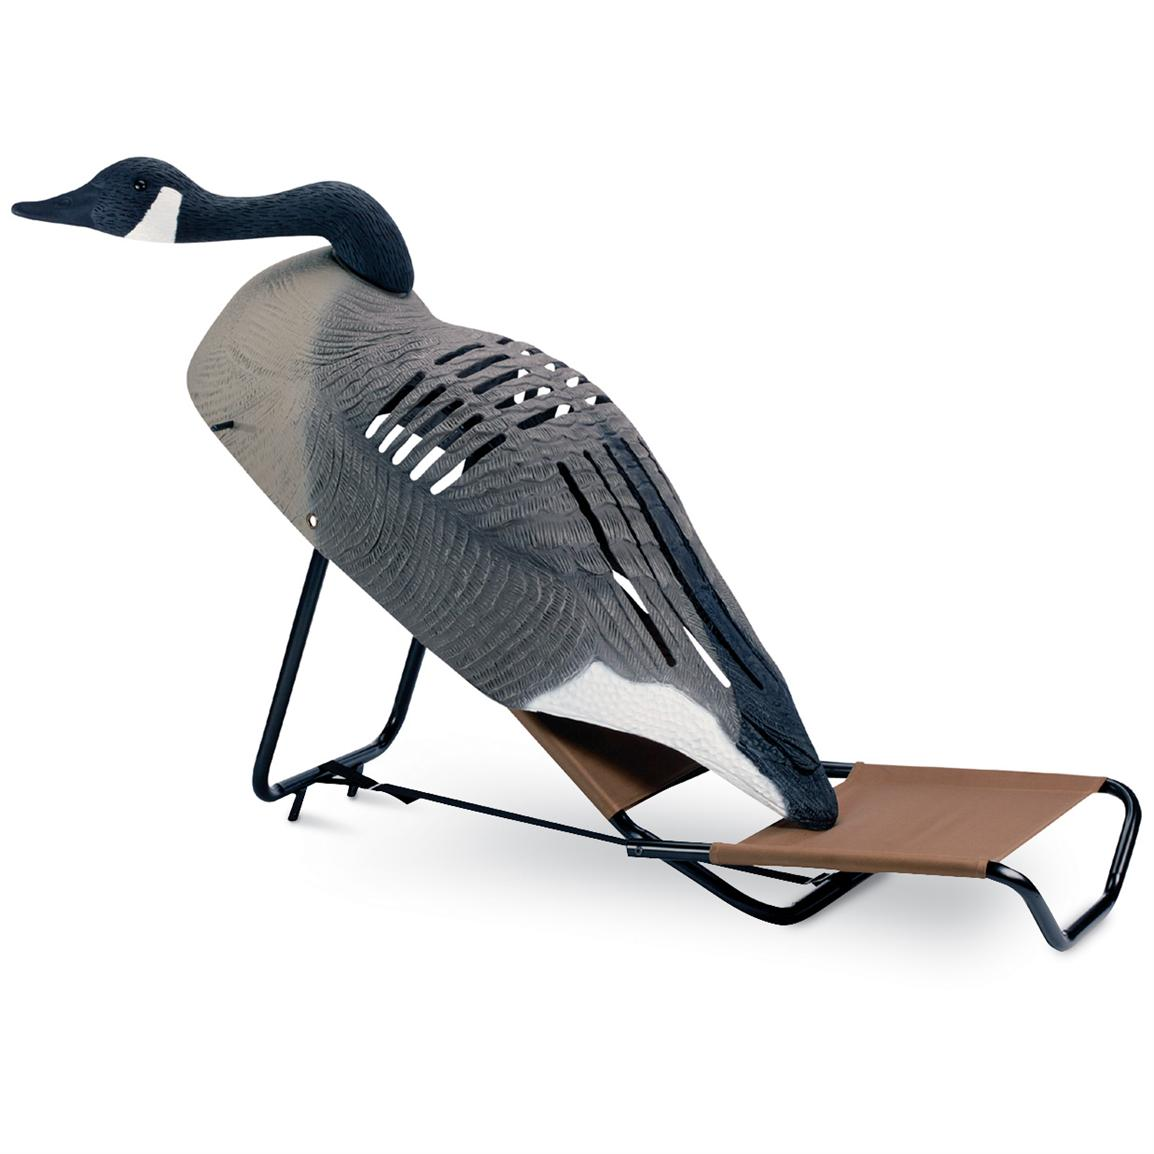 Expedite Original Sittin Goose Decoy Blind 20097 Waterfowl Blinds At Sportsman S Guide